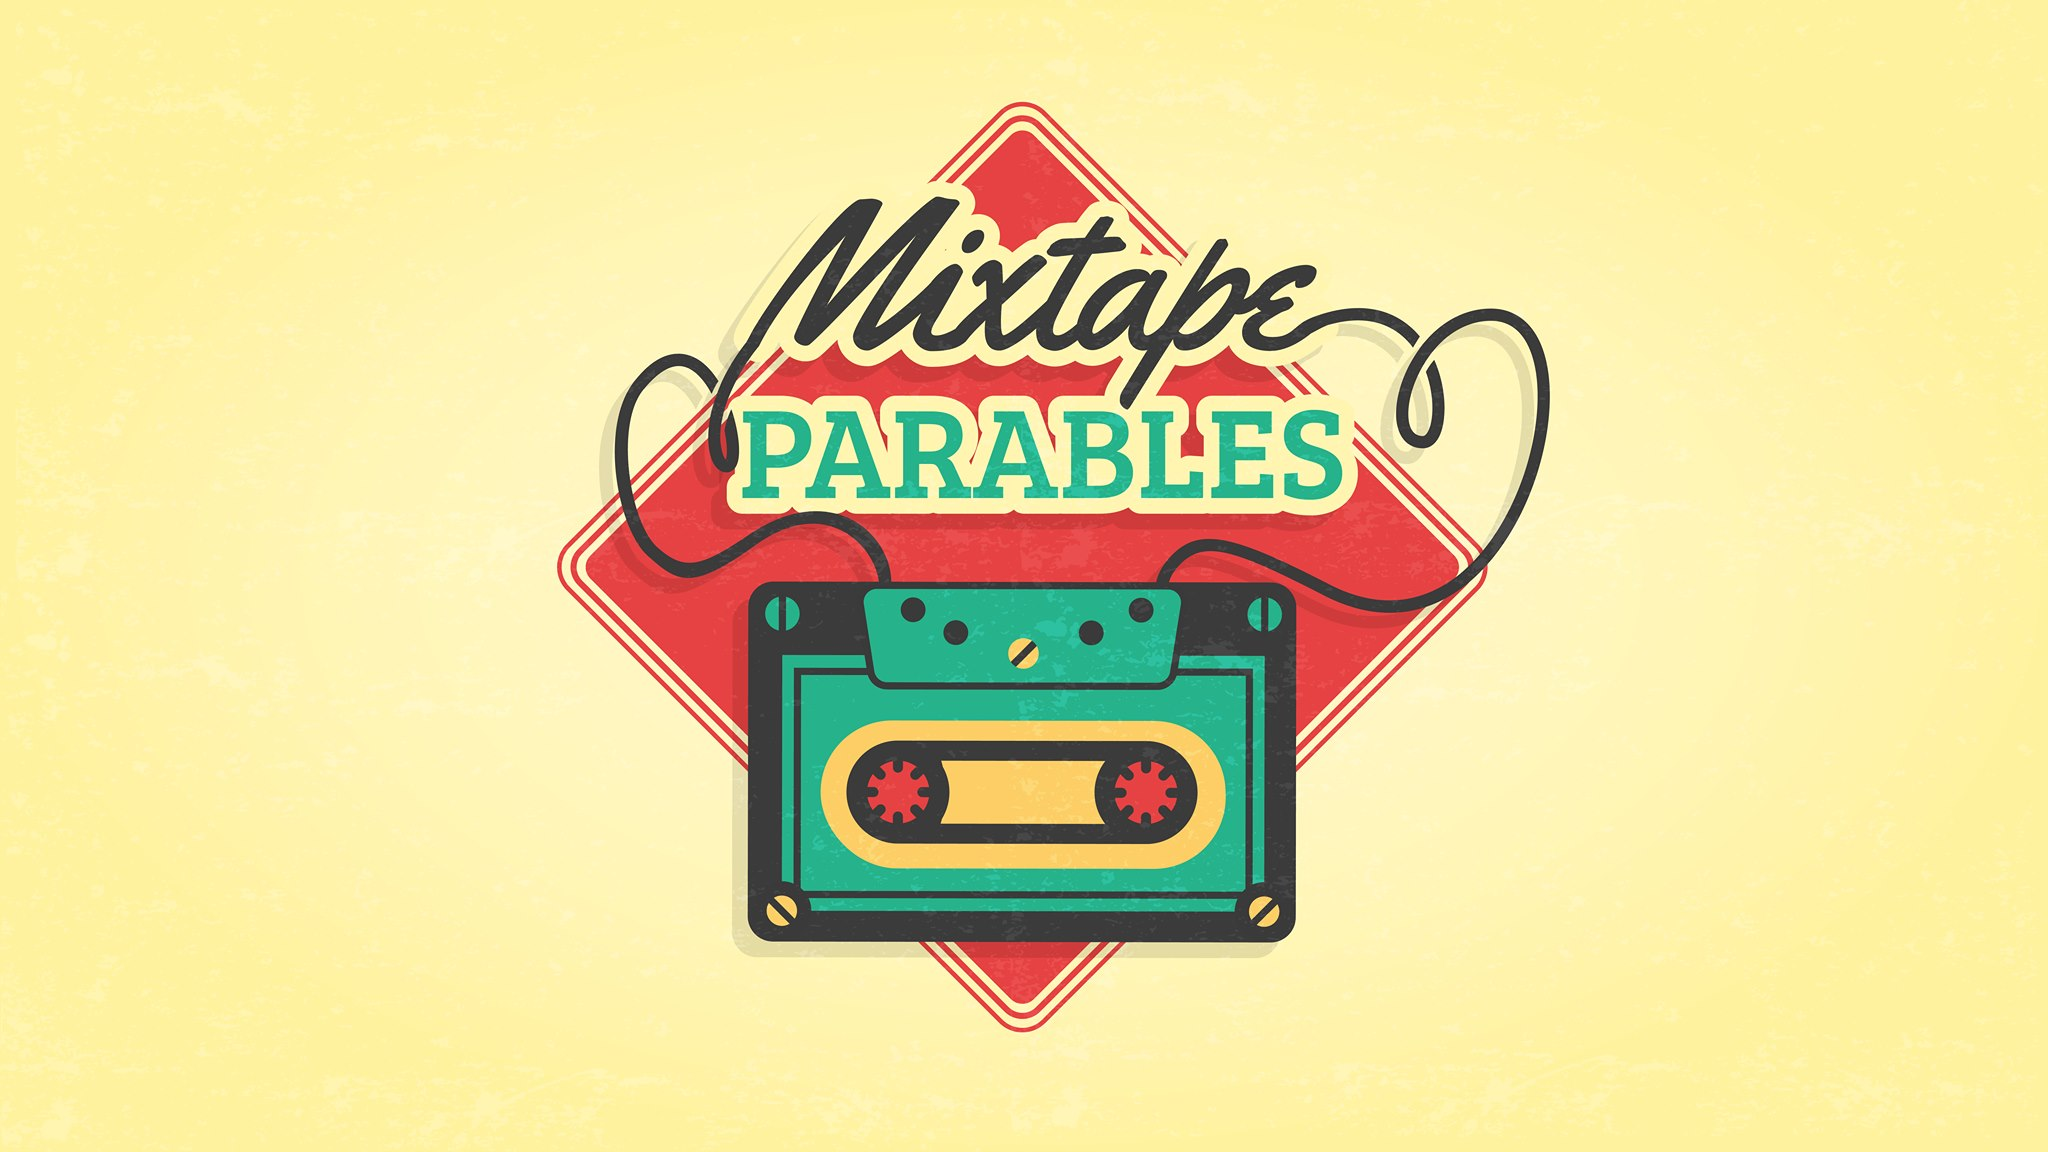 Mixtape Parables: The Parable of the Unmerciful Servant